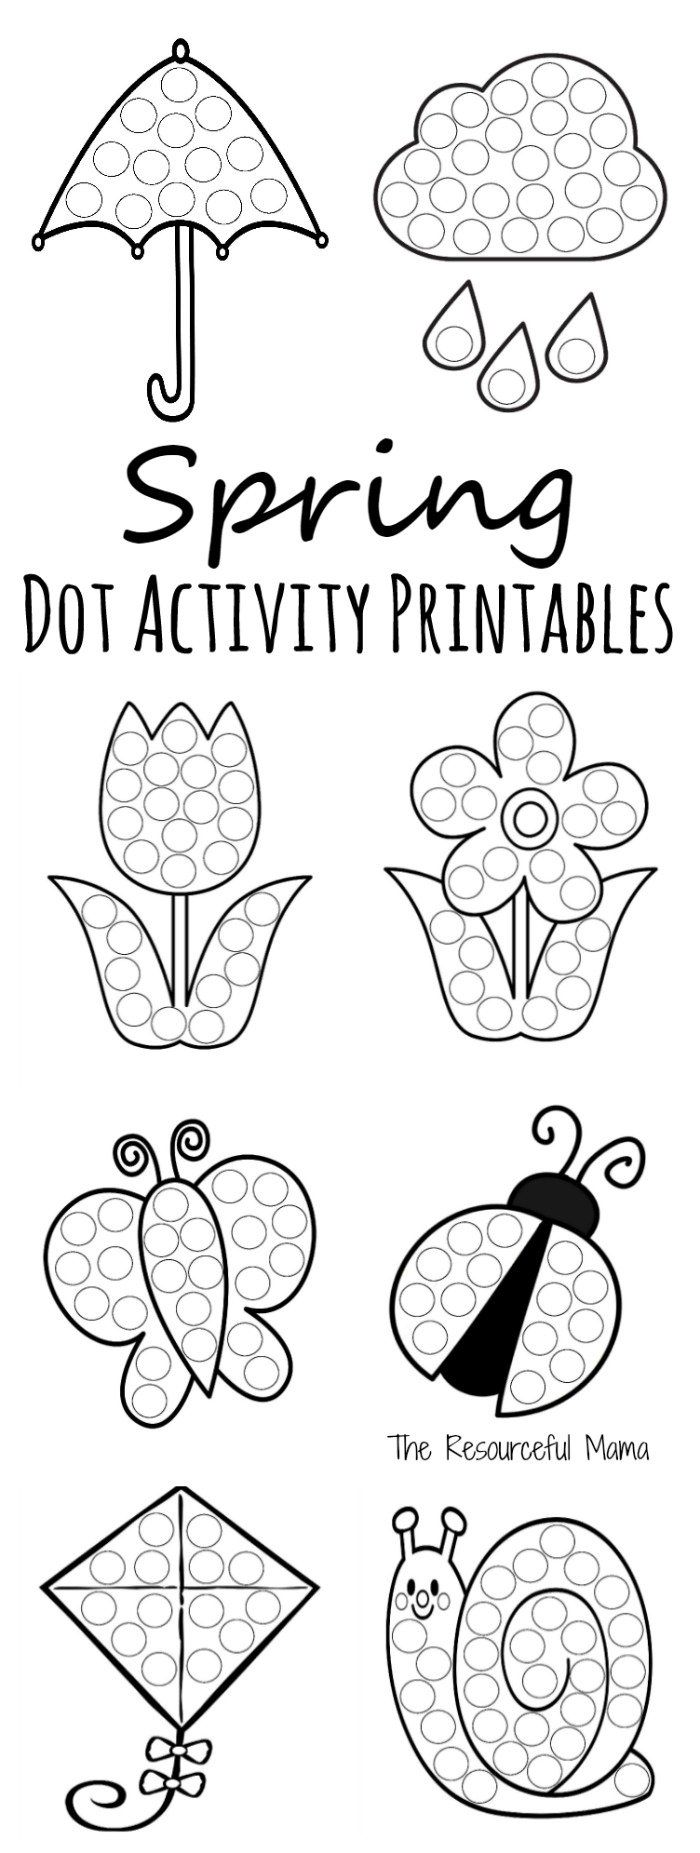 winter dot painting free printable boredom busters worksheets